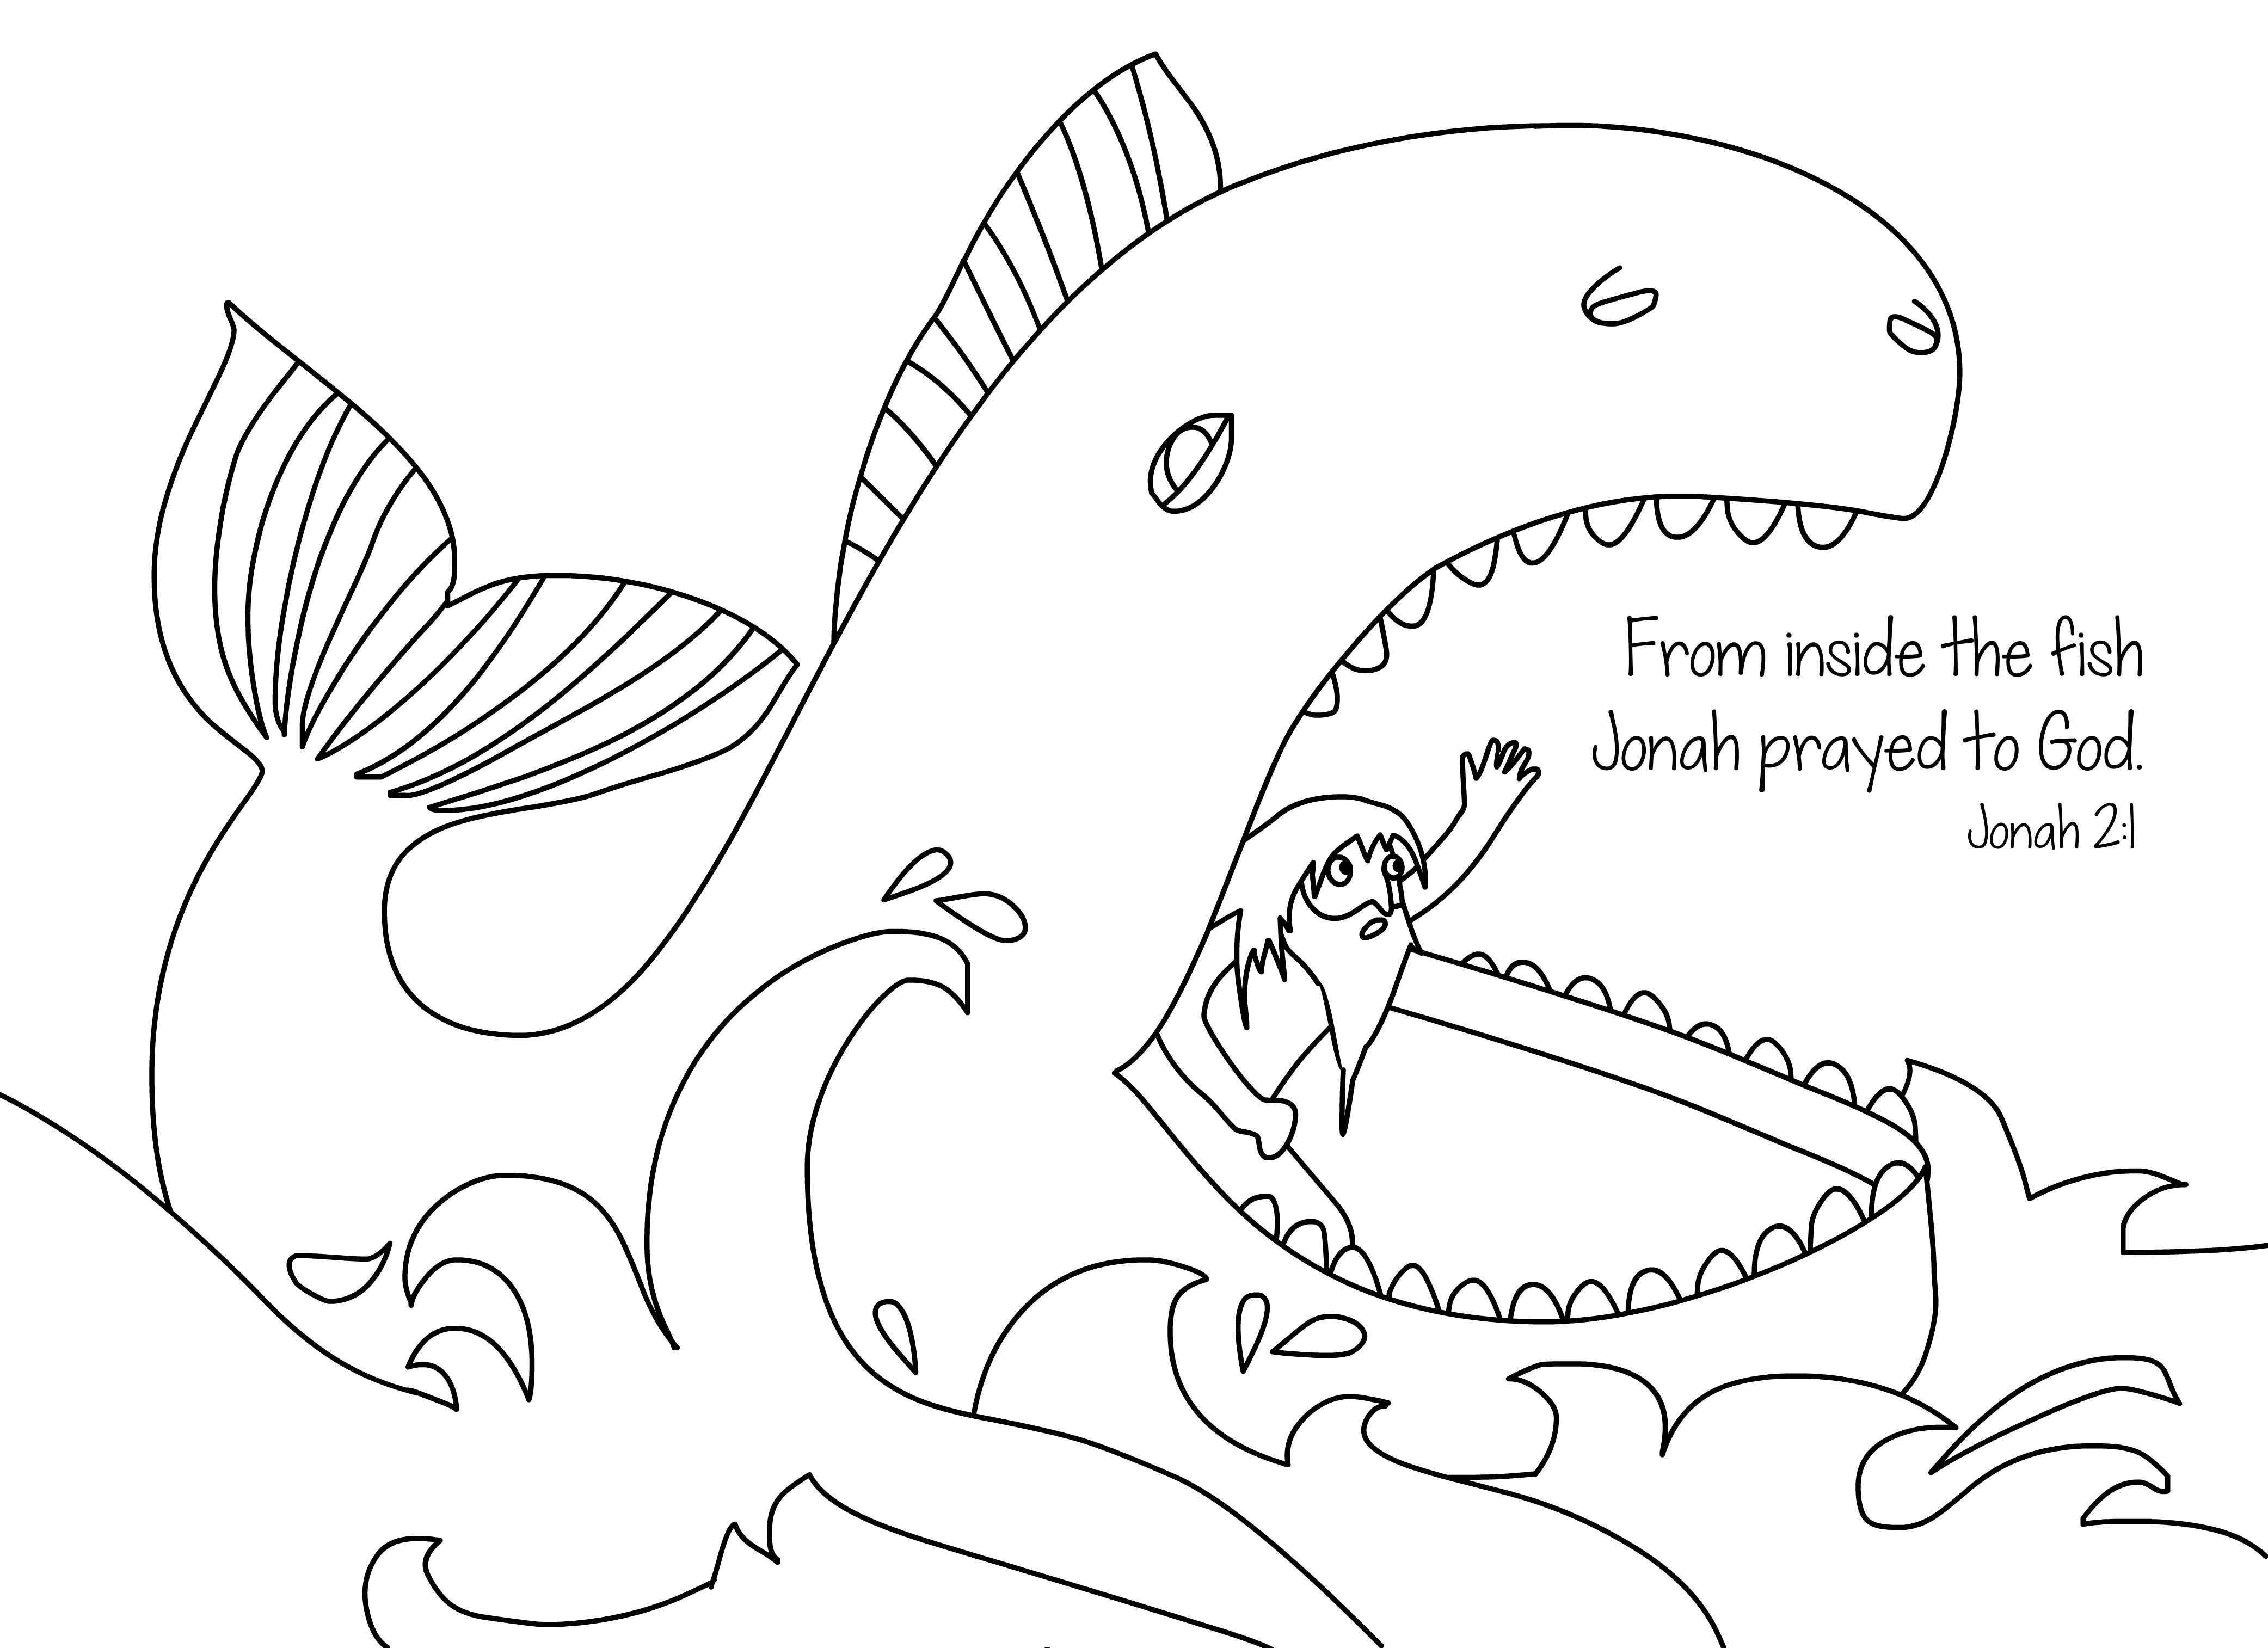 coloring printable jonah and the whale printable jonah and the whale coloring pages for kids the whale printable jonah coloring and